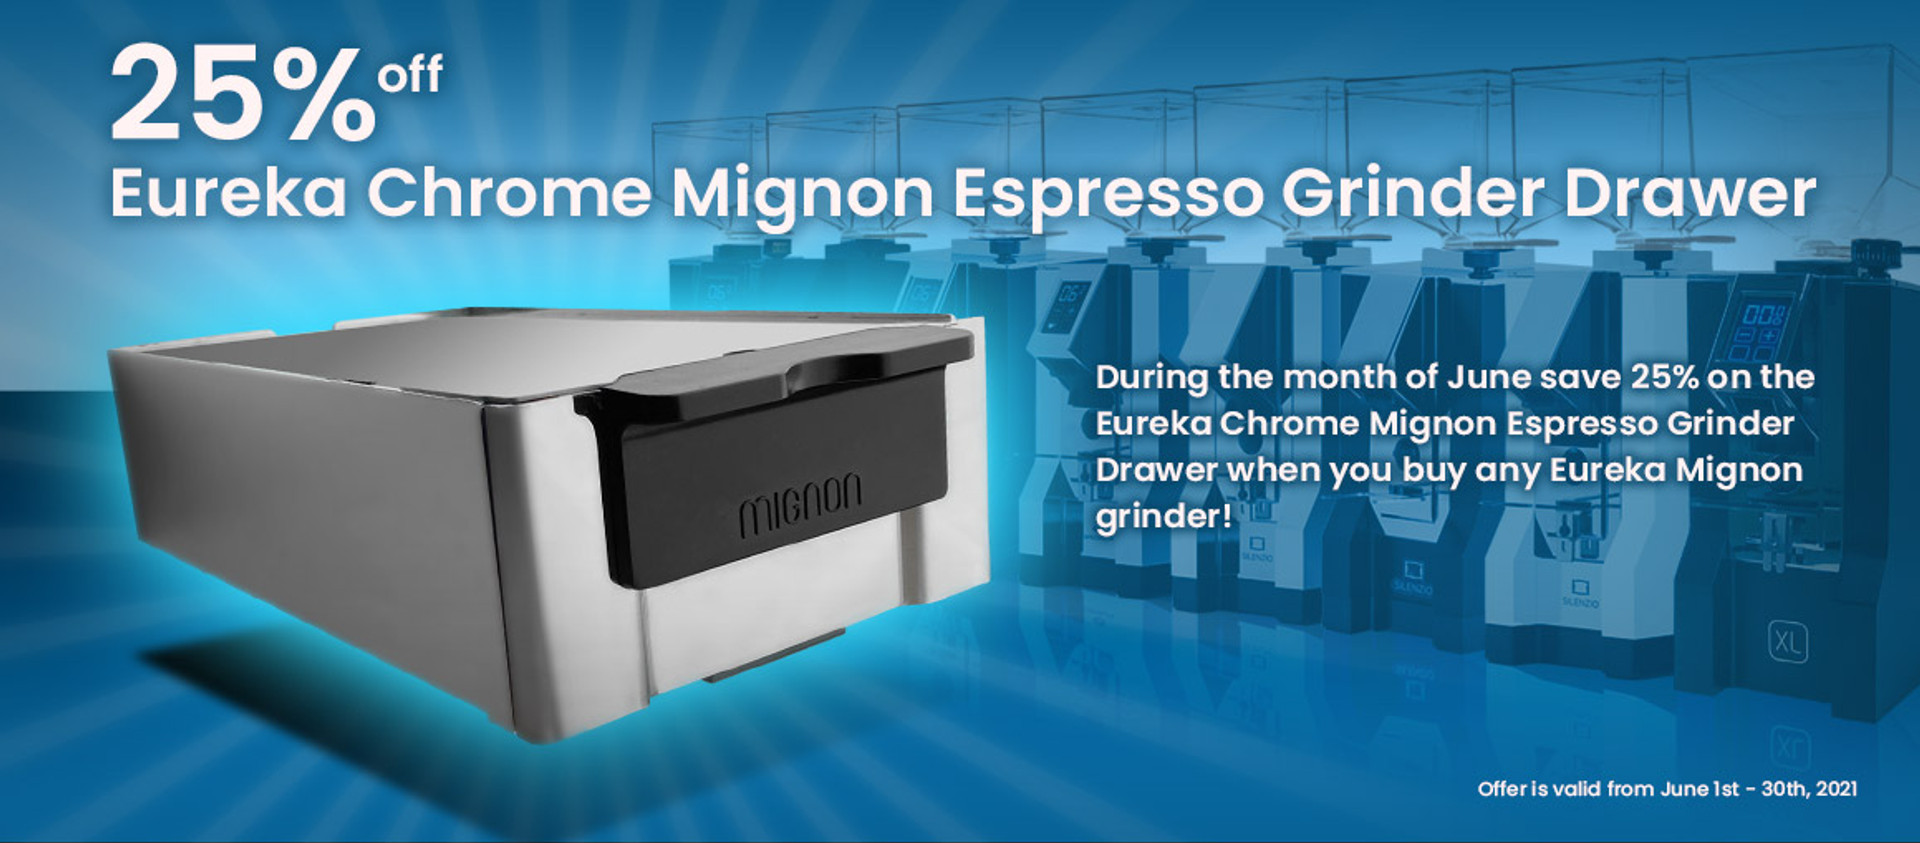 Mignon Drawer - 25% Off with Mignon Grinder